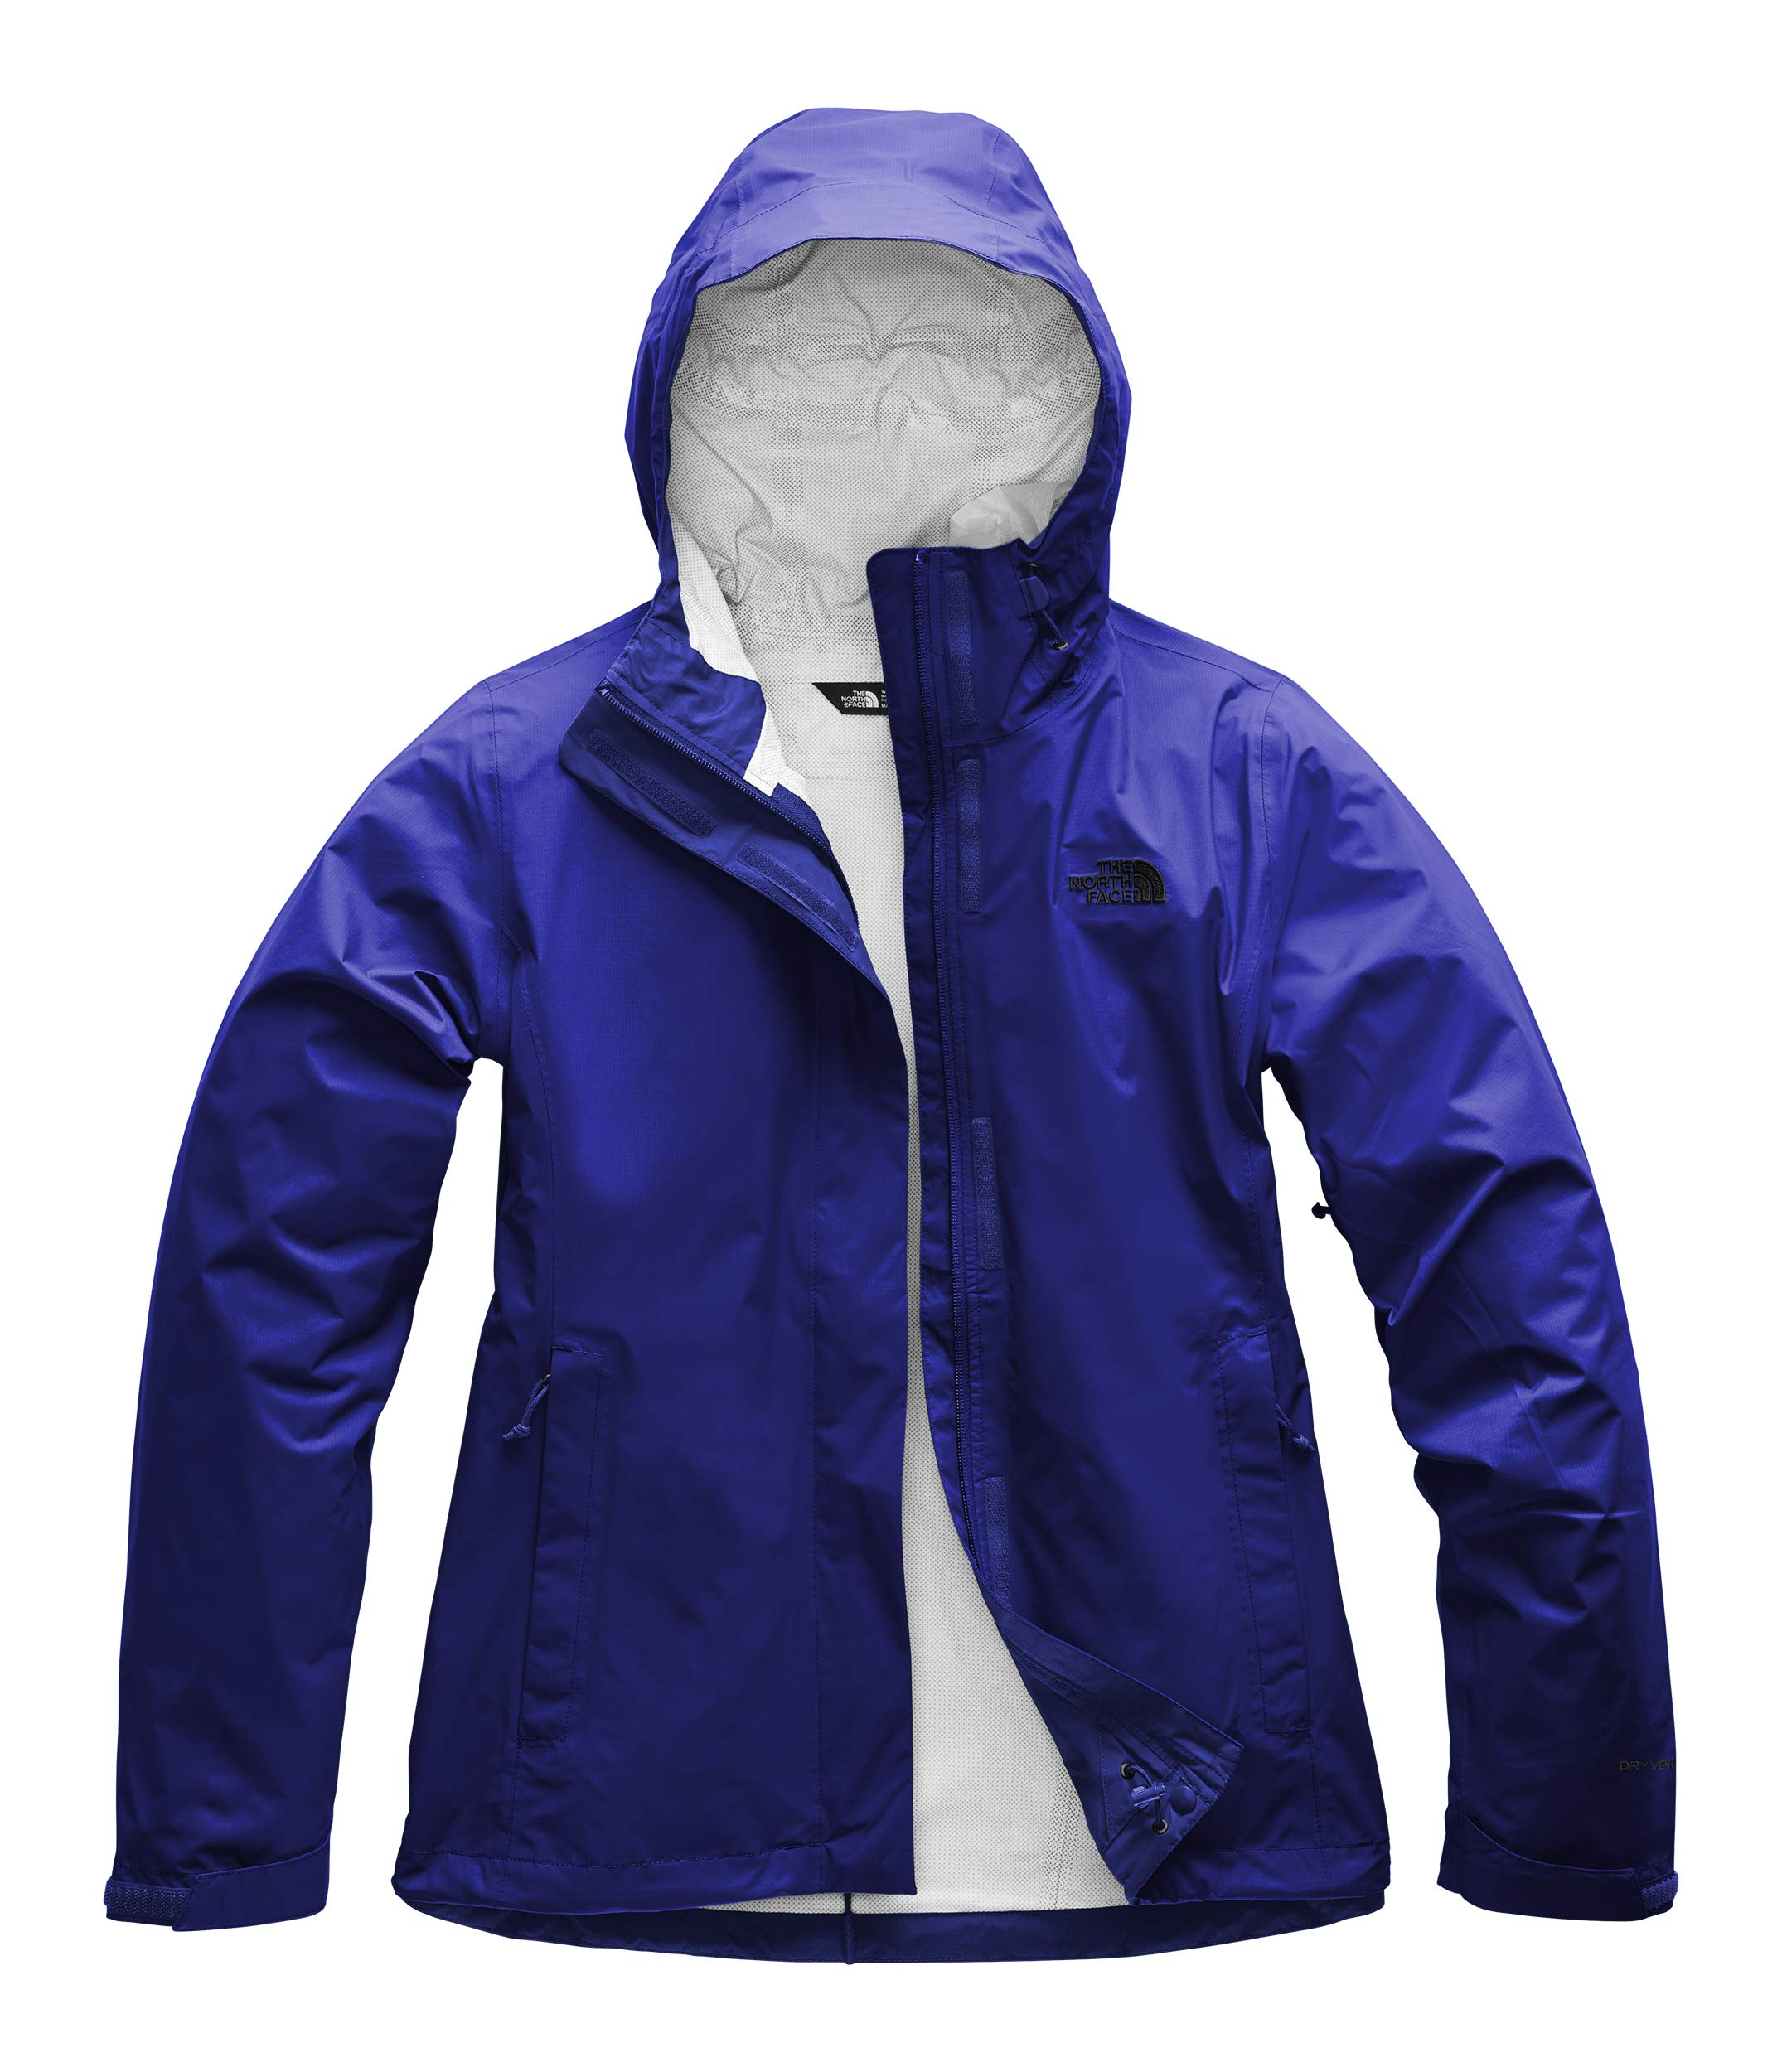 The North Face Women's Venture 2 Jacket, Aztec Blue, Size L by The North Face (Image #1)